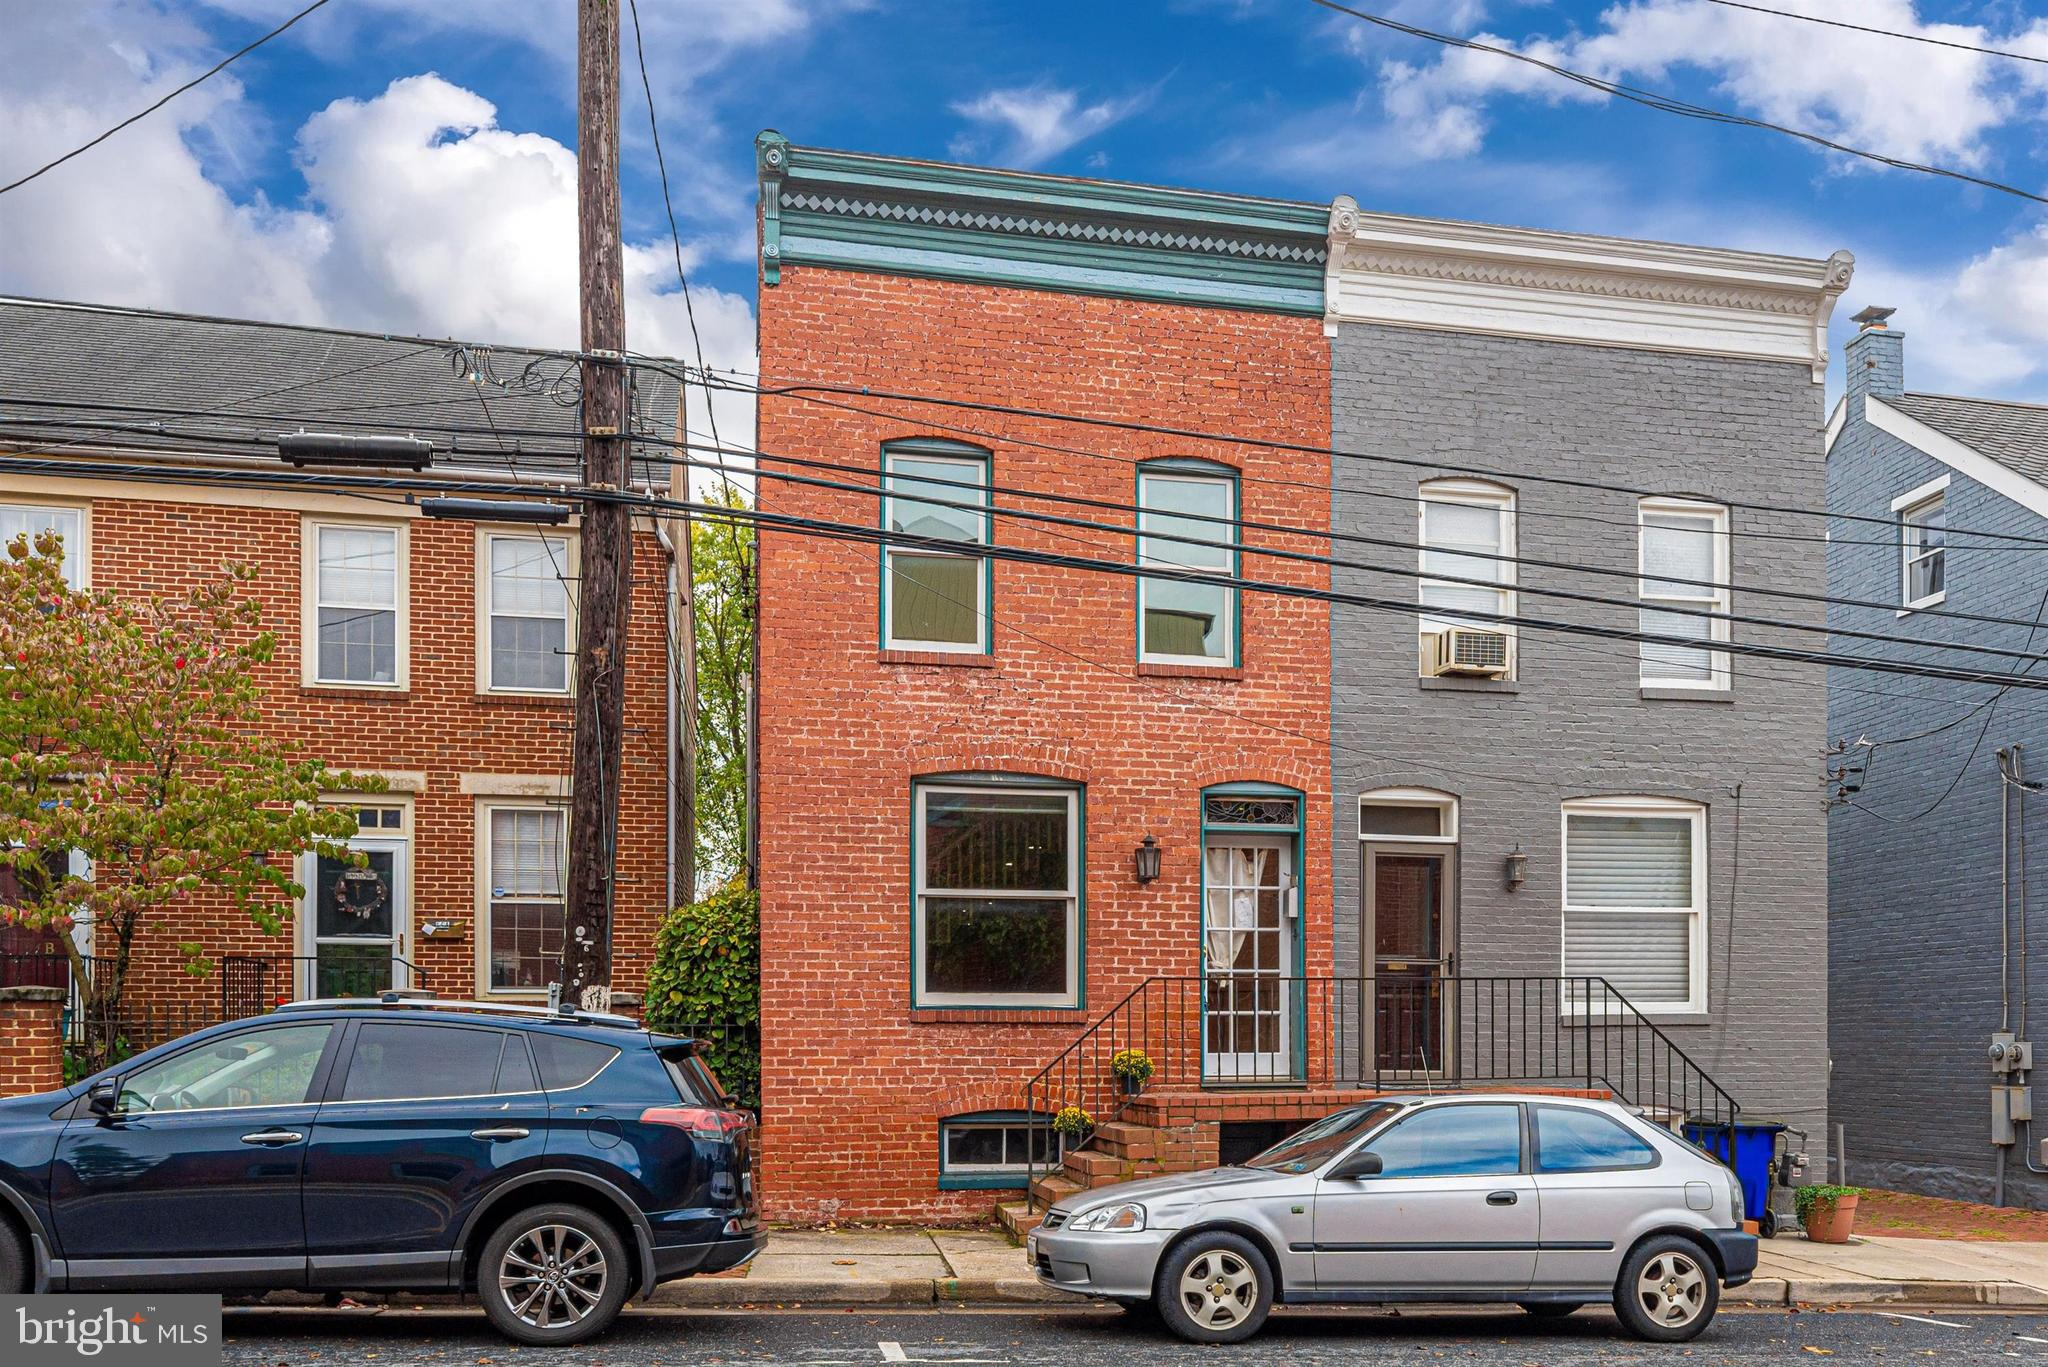 Welcome to this charming brick townhome in vibrant downtown Frederick! Having parking is gold and th